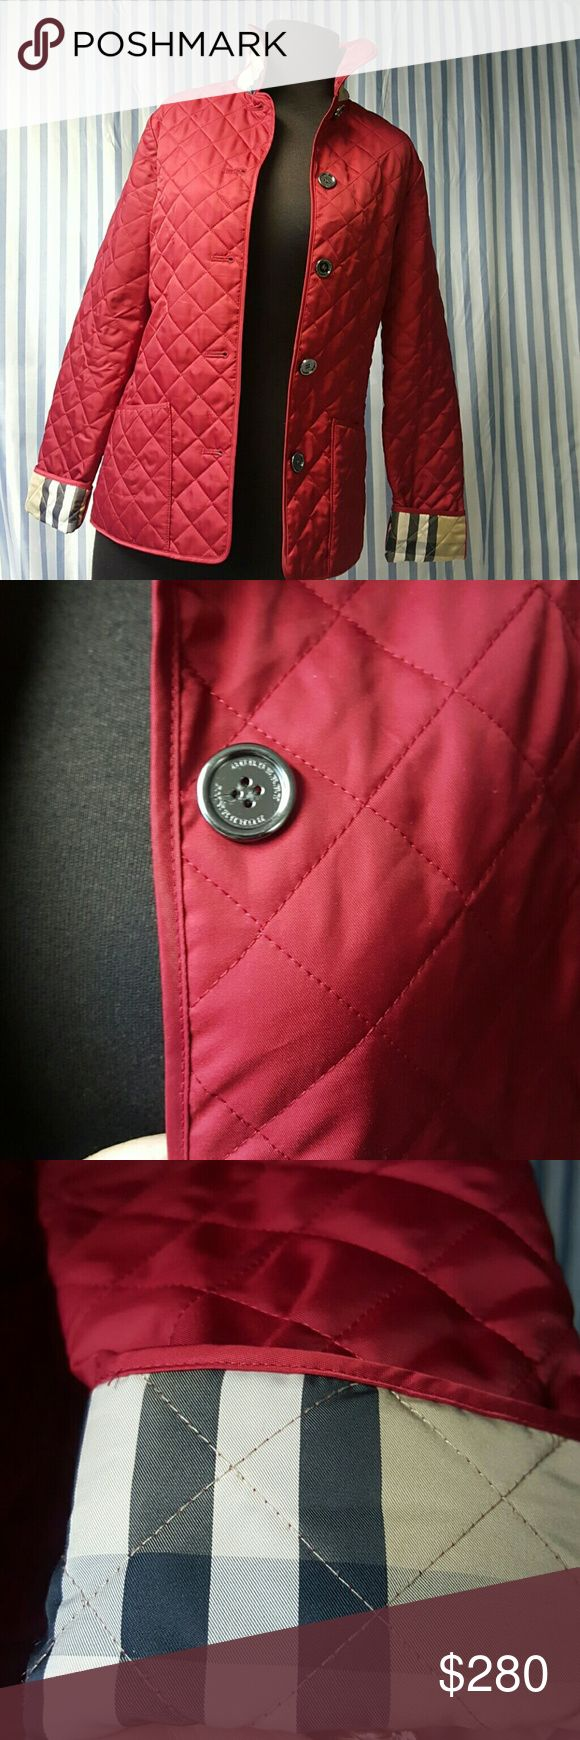 Burberry  jacket Red Burberry jacket with the Burberry  print on neck of jacket and sleeves Burberry Jackets & Coats